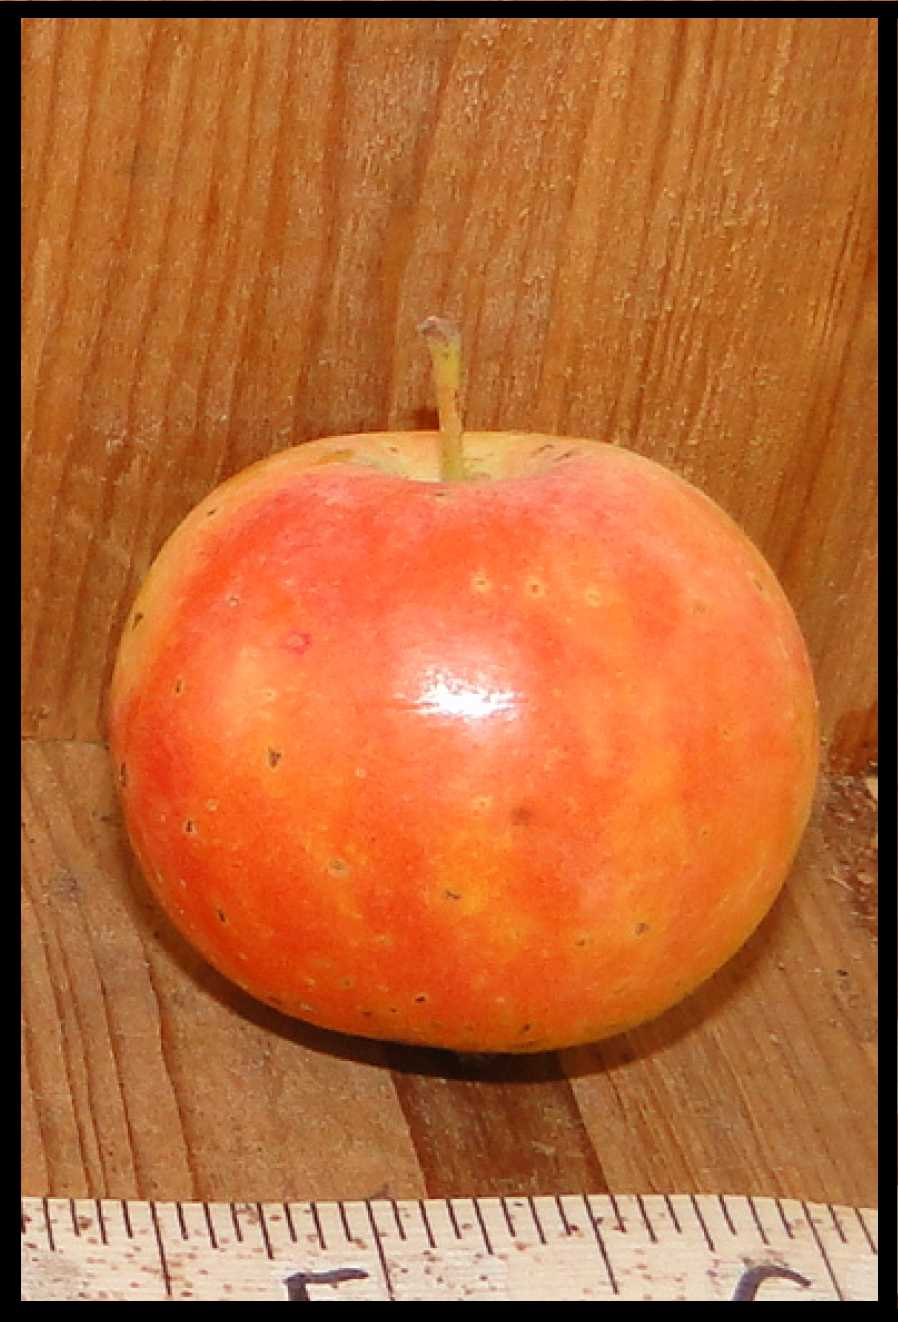 pink and yellow mottled apple